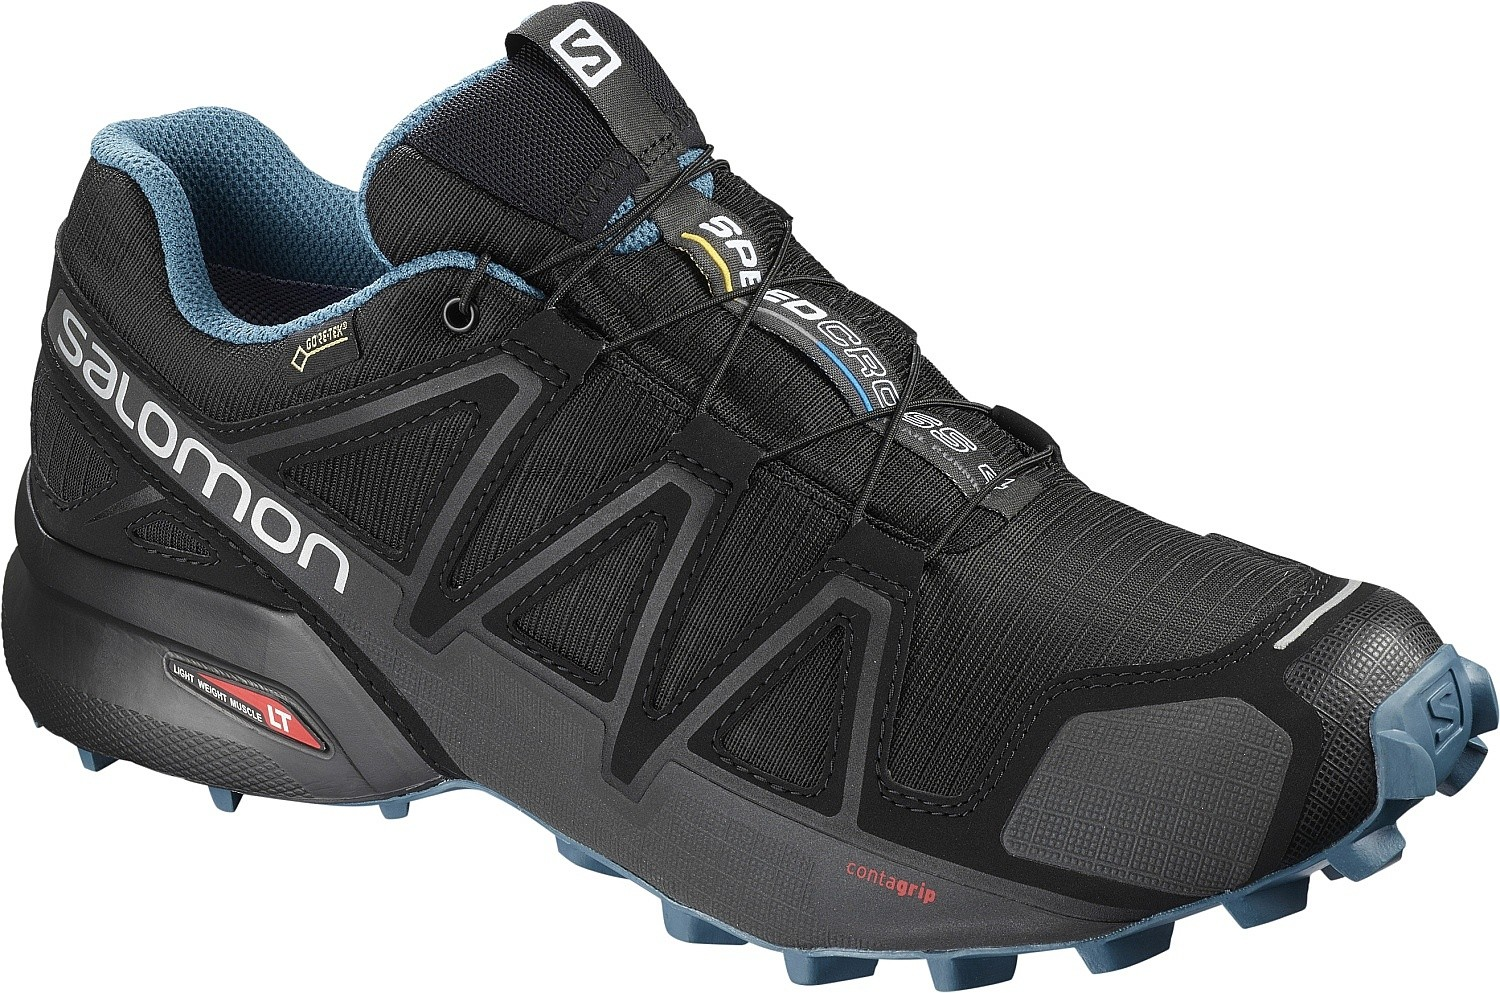 Kup Salomon Speedcross 4 Gtx® Nocturne 2 Blackblack